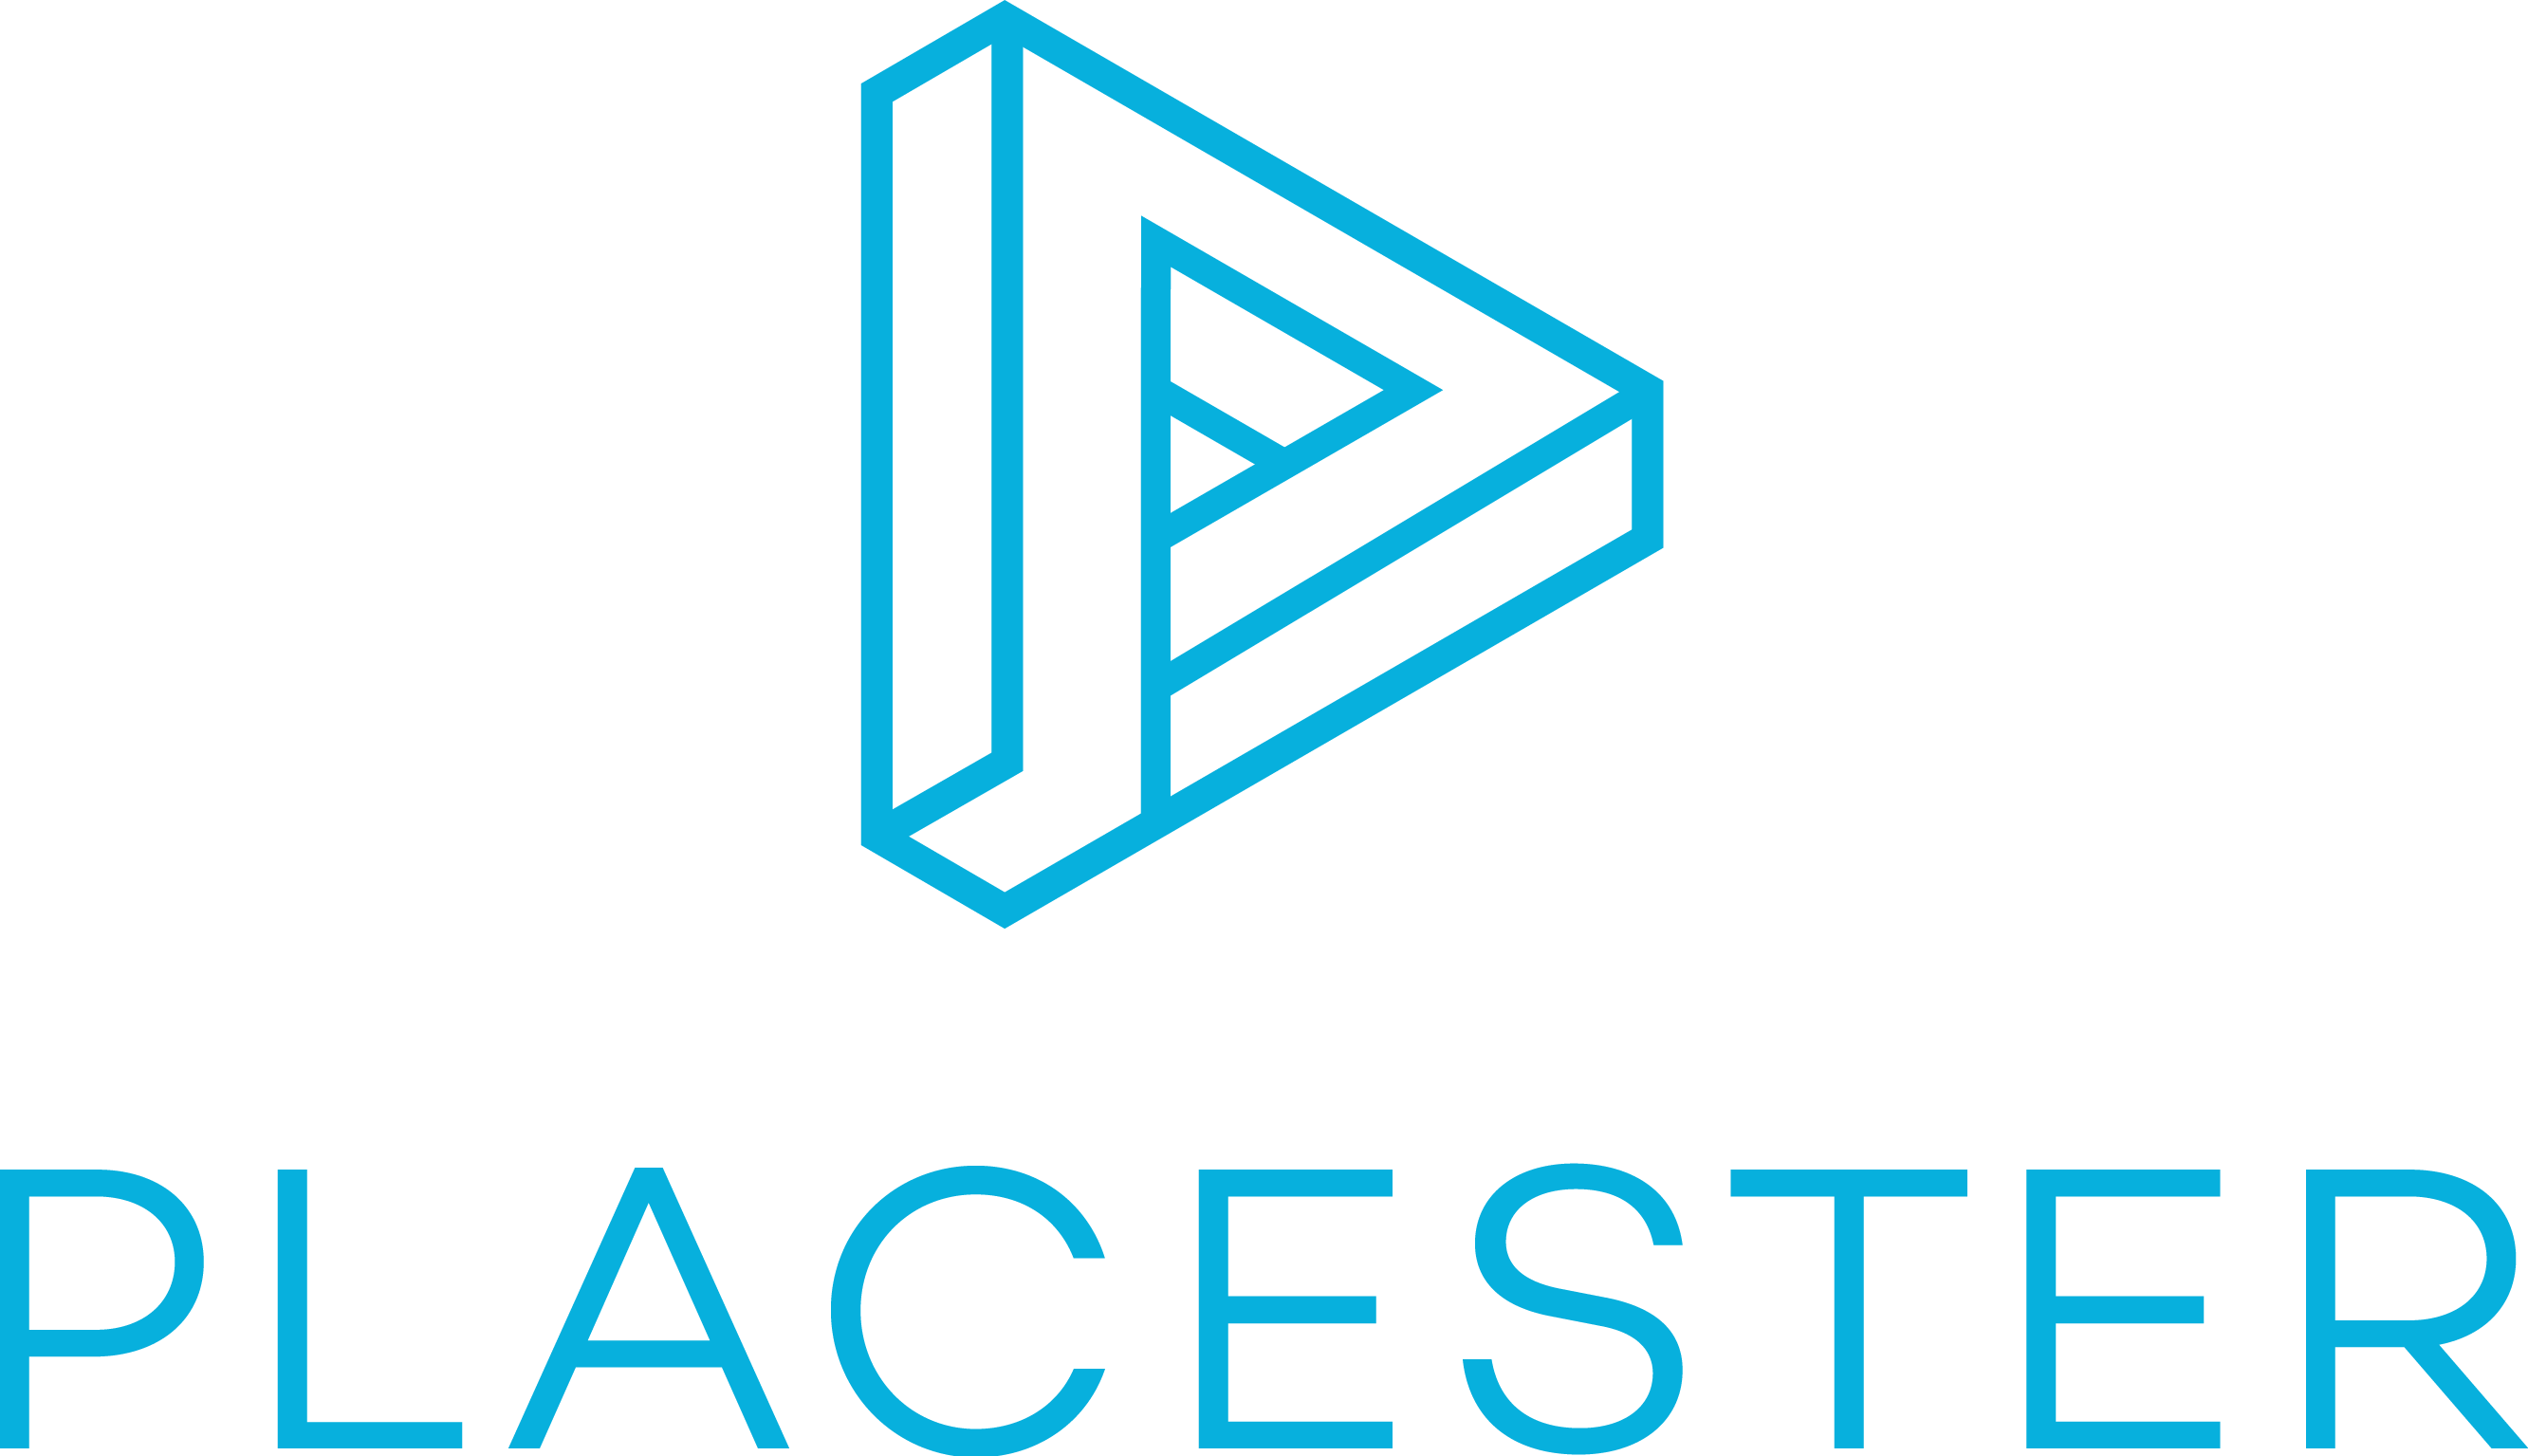 Placester Logo